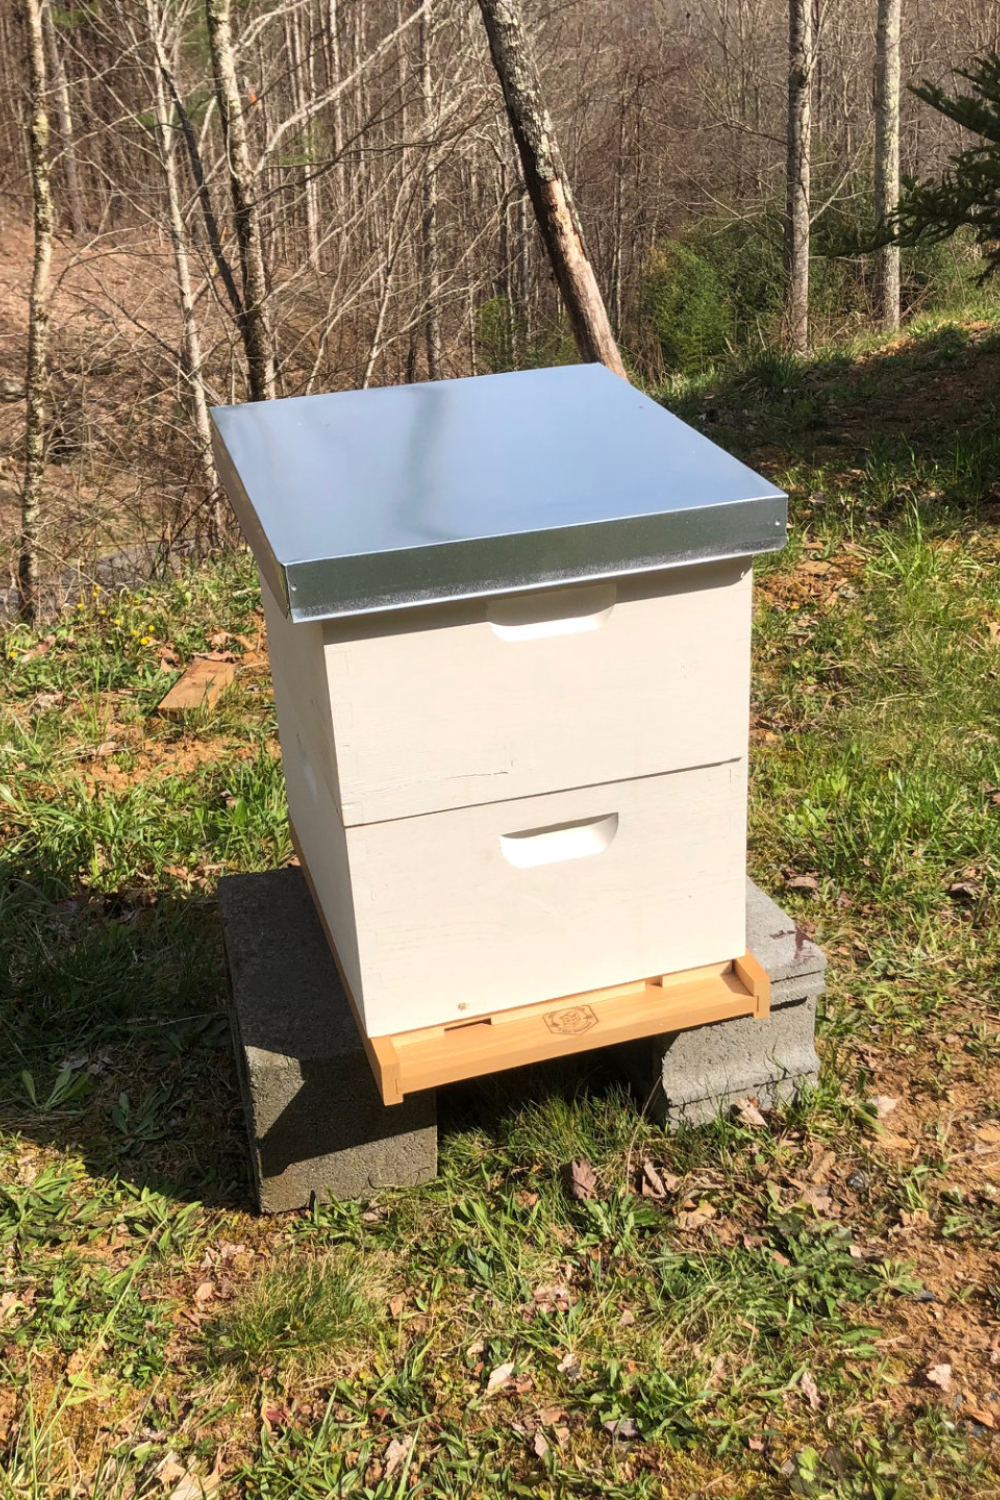 Beekeeping Basics - Articles and Guides